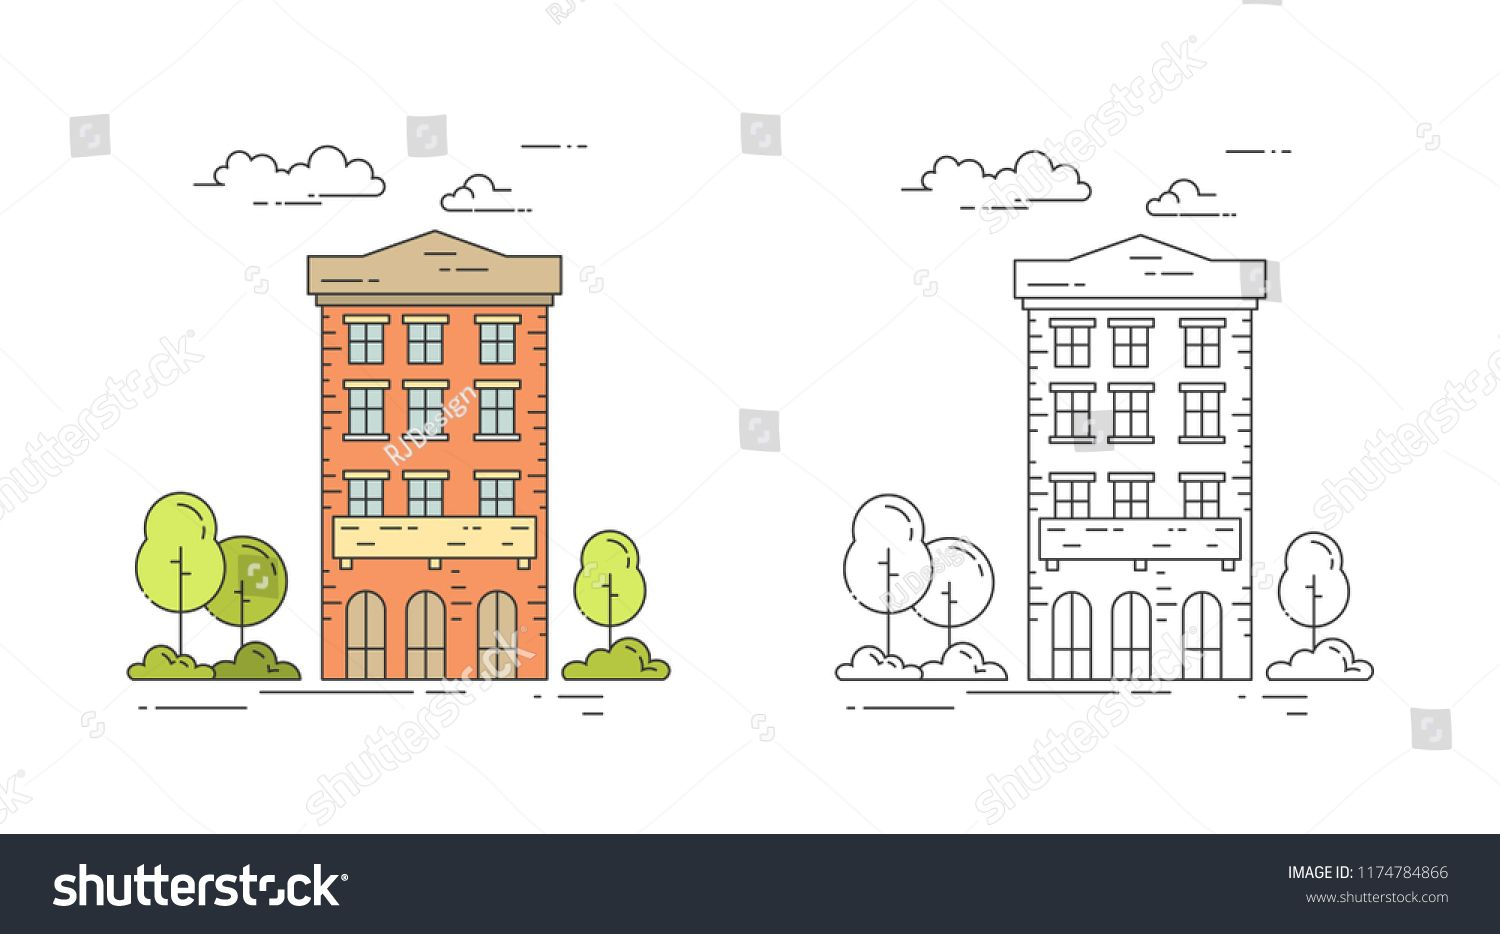 City Line Vintage House Vector Illustration Set With Multi Storey Apartment Building With Trees And Clouds In Colorf Vintage House Outline Designs House Vector